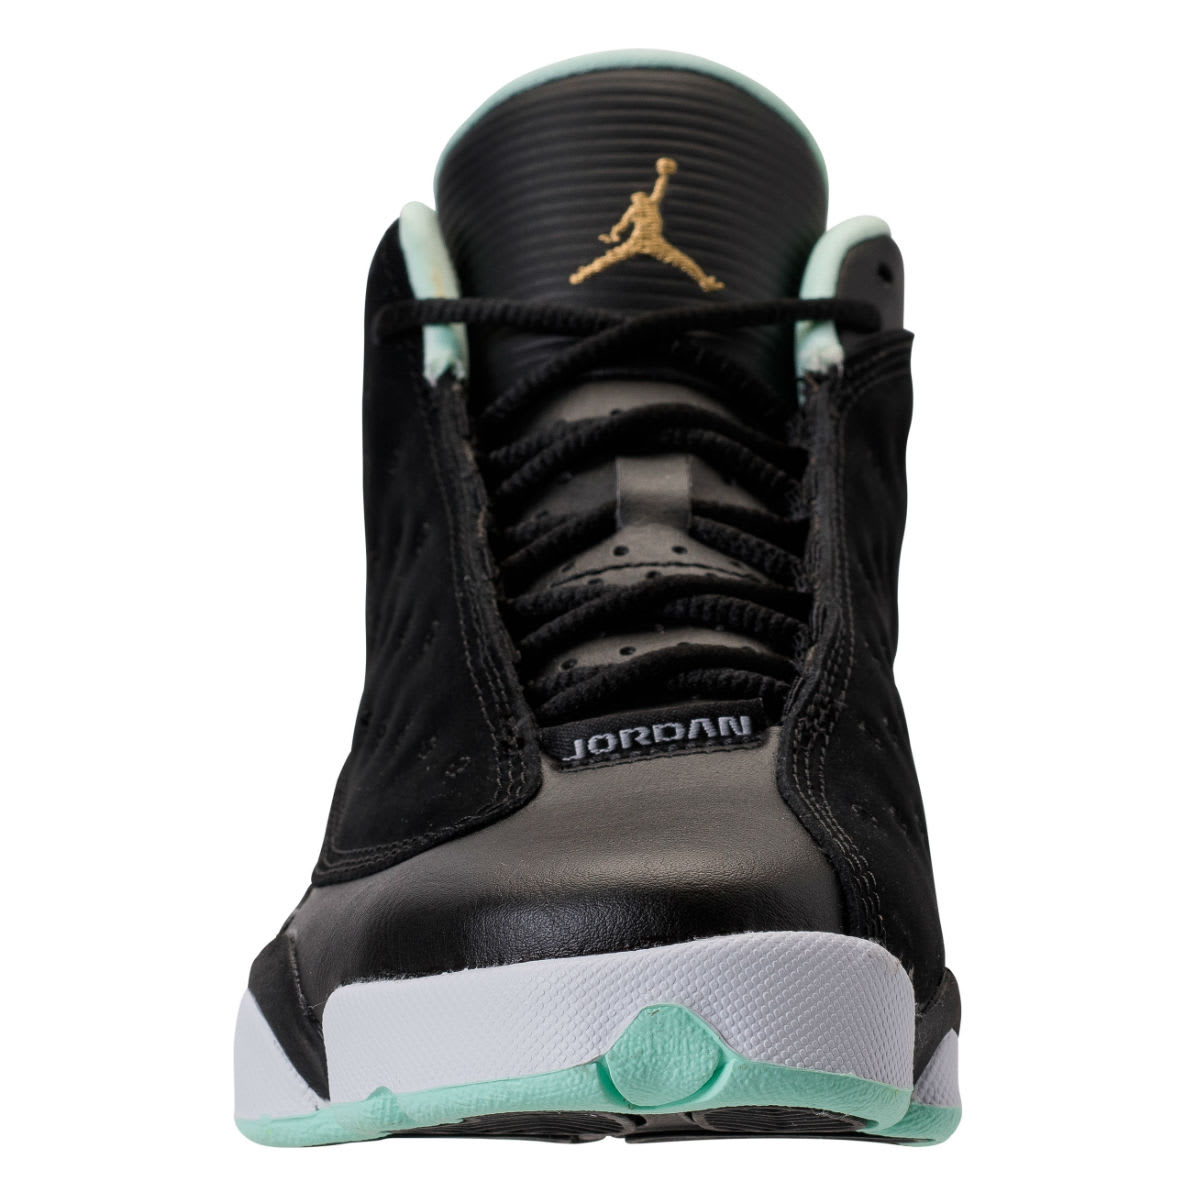 Air Jordan 13 GS Mint Foam Release Date Front 439358-015